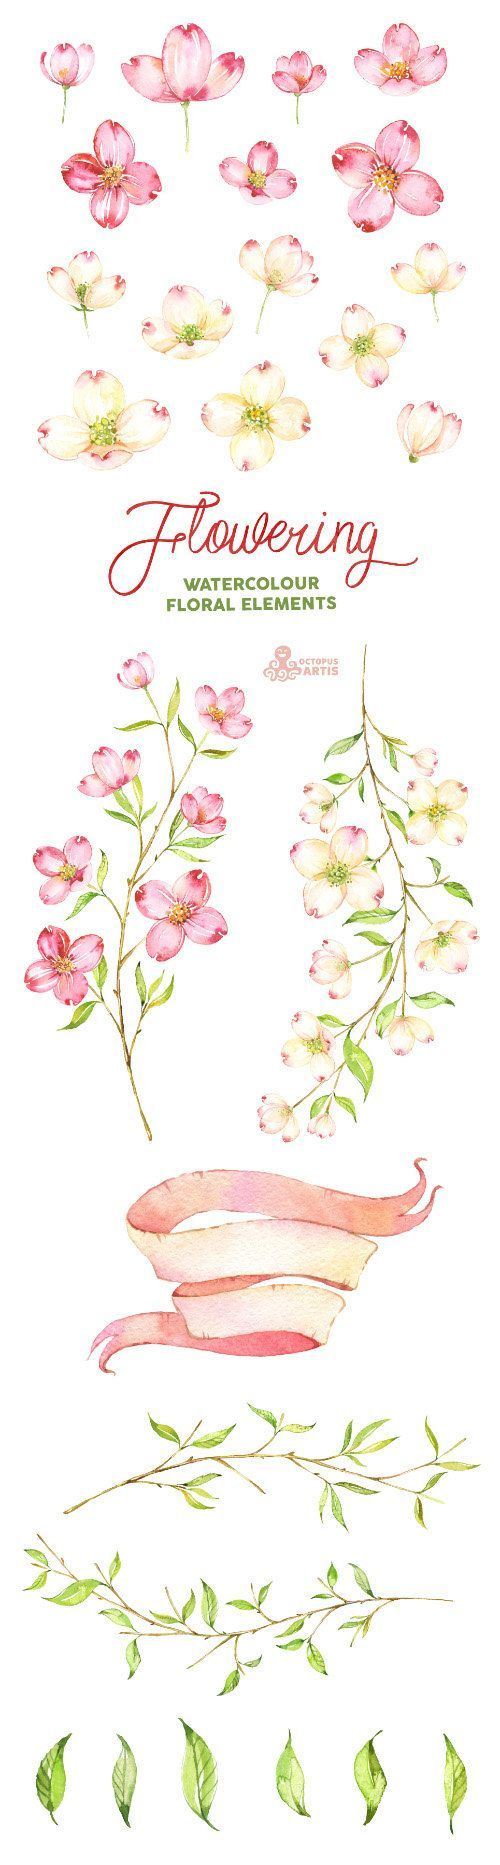 This set of 26 handpainted watercolor separate floral elements. Perfect graphic for wedding invitations, greeting cards, photos, posters, quotes and more.  -----------------------------------------------------------------  INSTANT DOWNLOAD Once payment is cleared, you can download your files directly from your Etsy account.  -----------------------------------------------------------------  This listing includes:  26 x Floral Elements(Flowers, leaves, branches, banner) in PNG with…